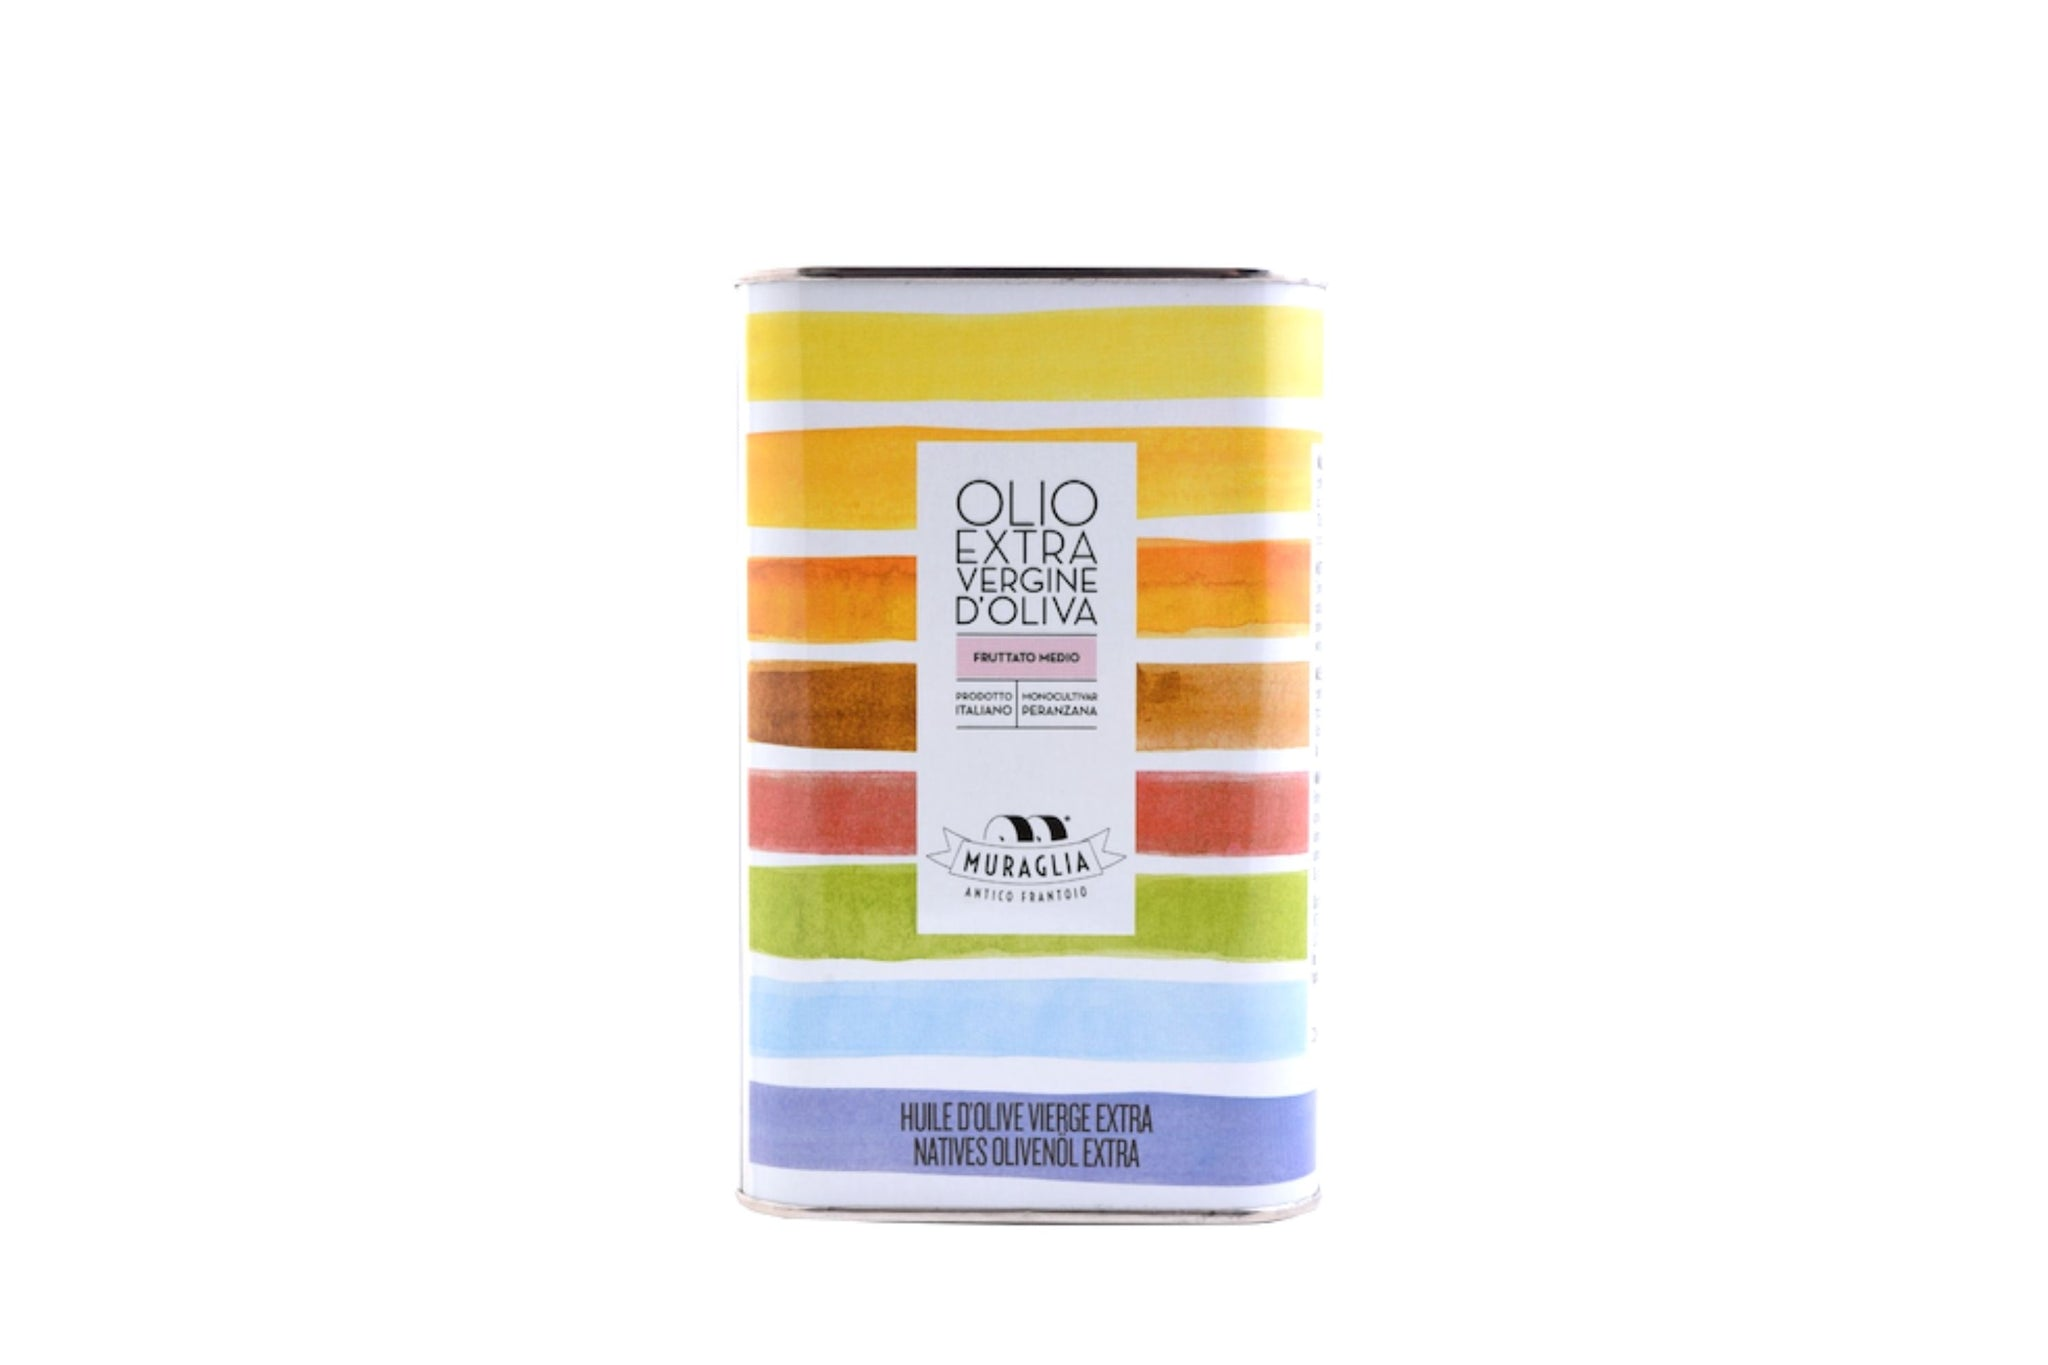 Frantoio Muraglia Peranzana Medium Fruity Extra Virgin Olive Oil 1L Tin